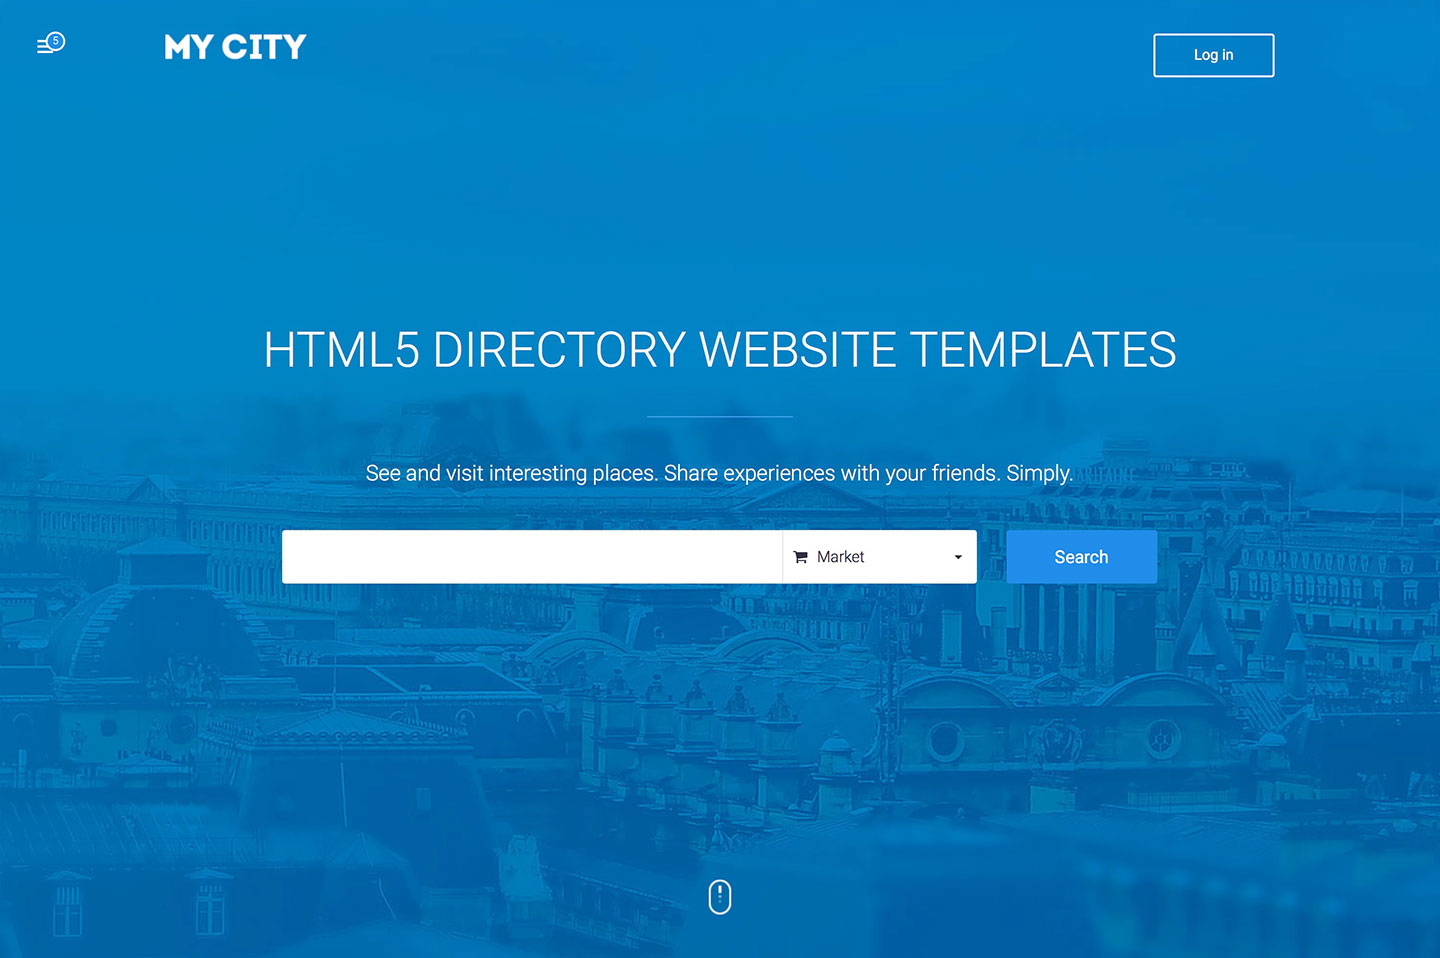 23 top responsive html5 directory website templates 2018 colorlib top 23 responsive html5 directory website templates for business directories 2018 accmission Gallery